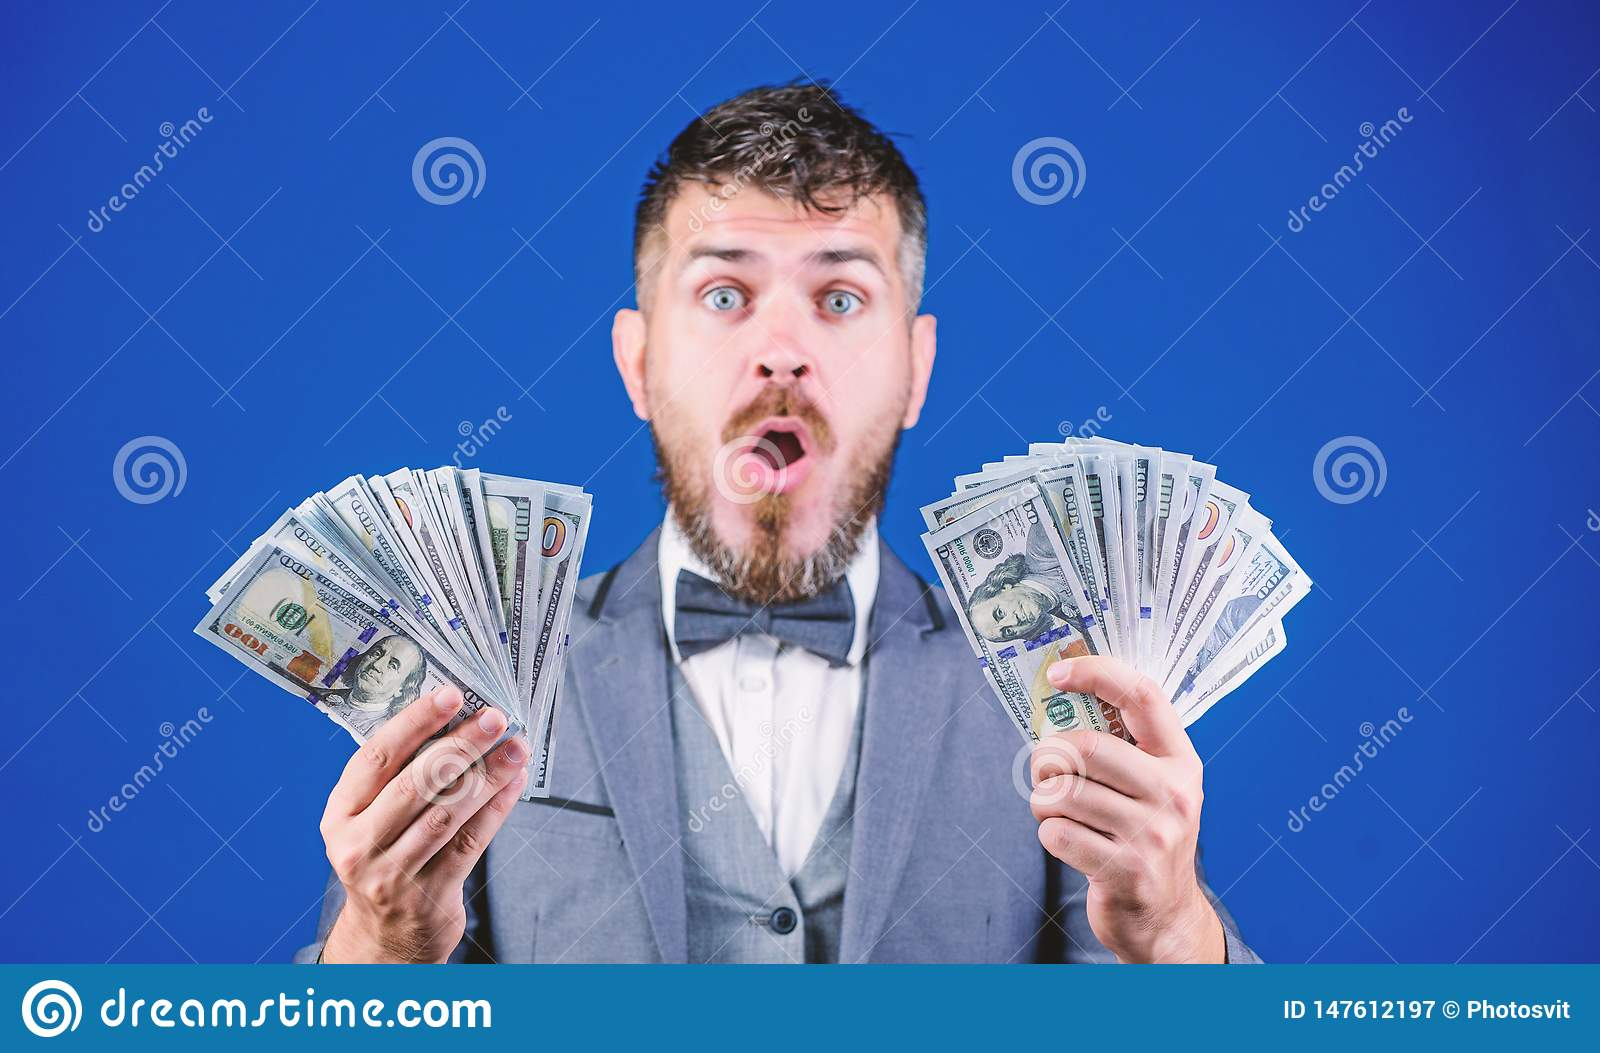 The result surpassed all his hopes. Bearded man holding cash money. Rich businessman with us dollars banknotes. Currency